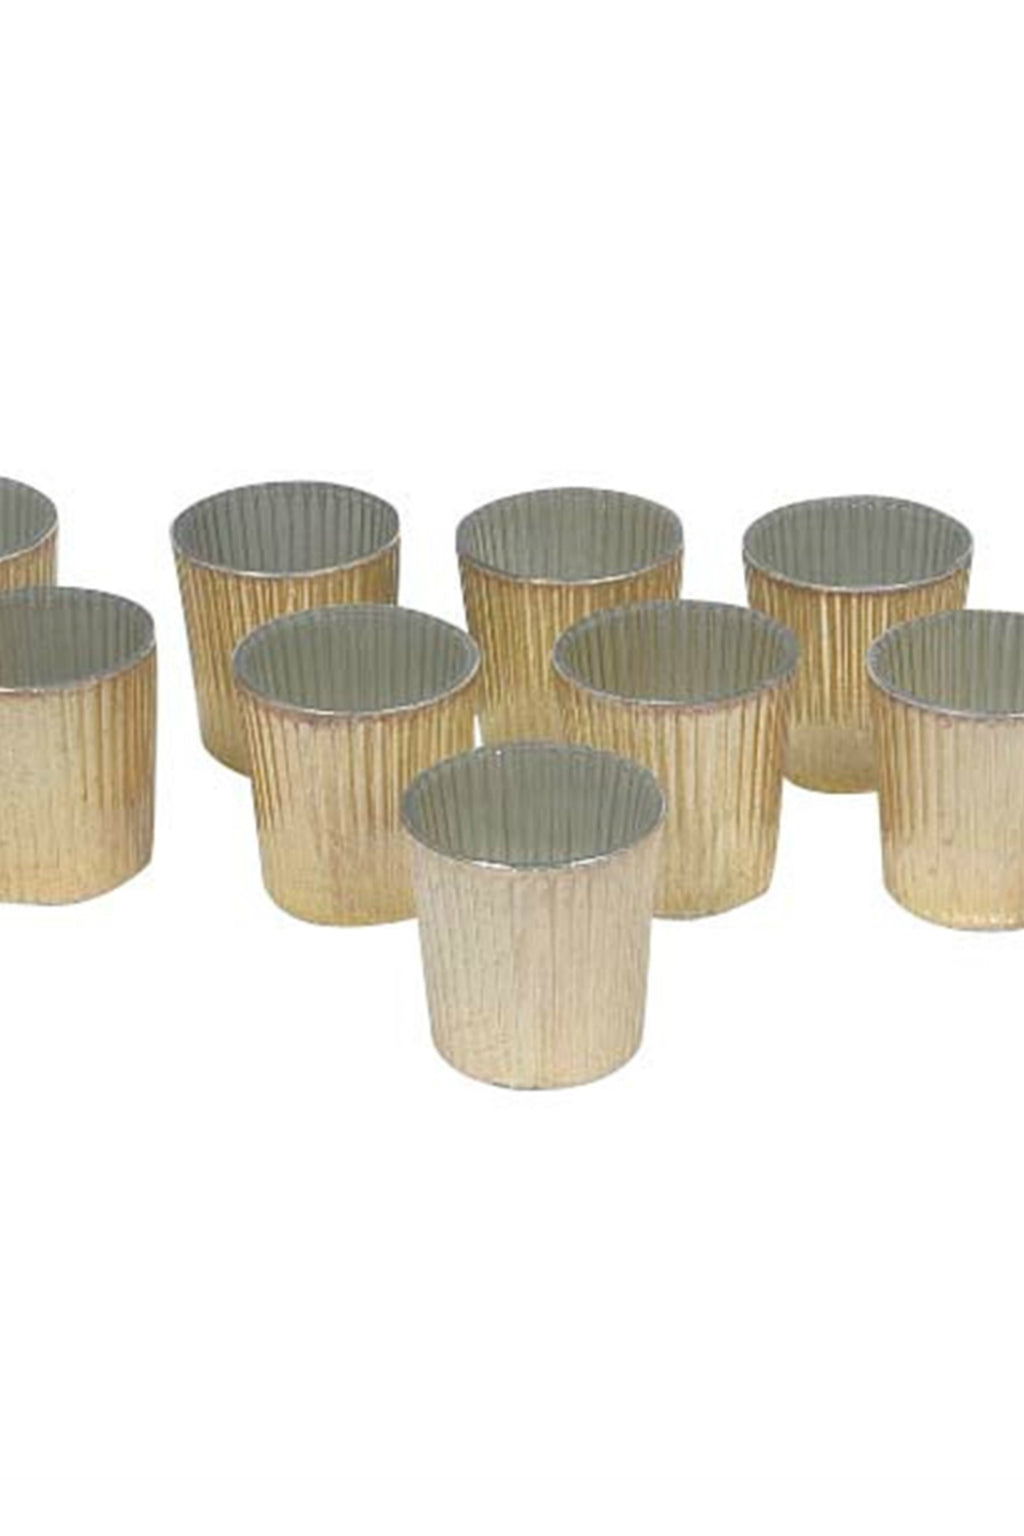 BIDK Home Gold Finish Mercury Glass Votives